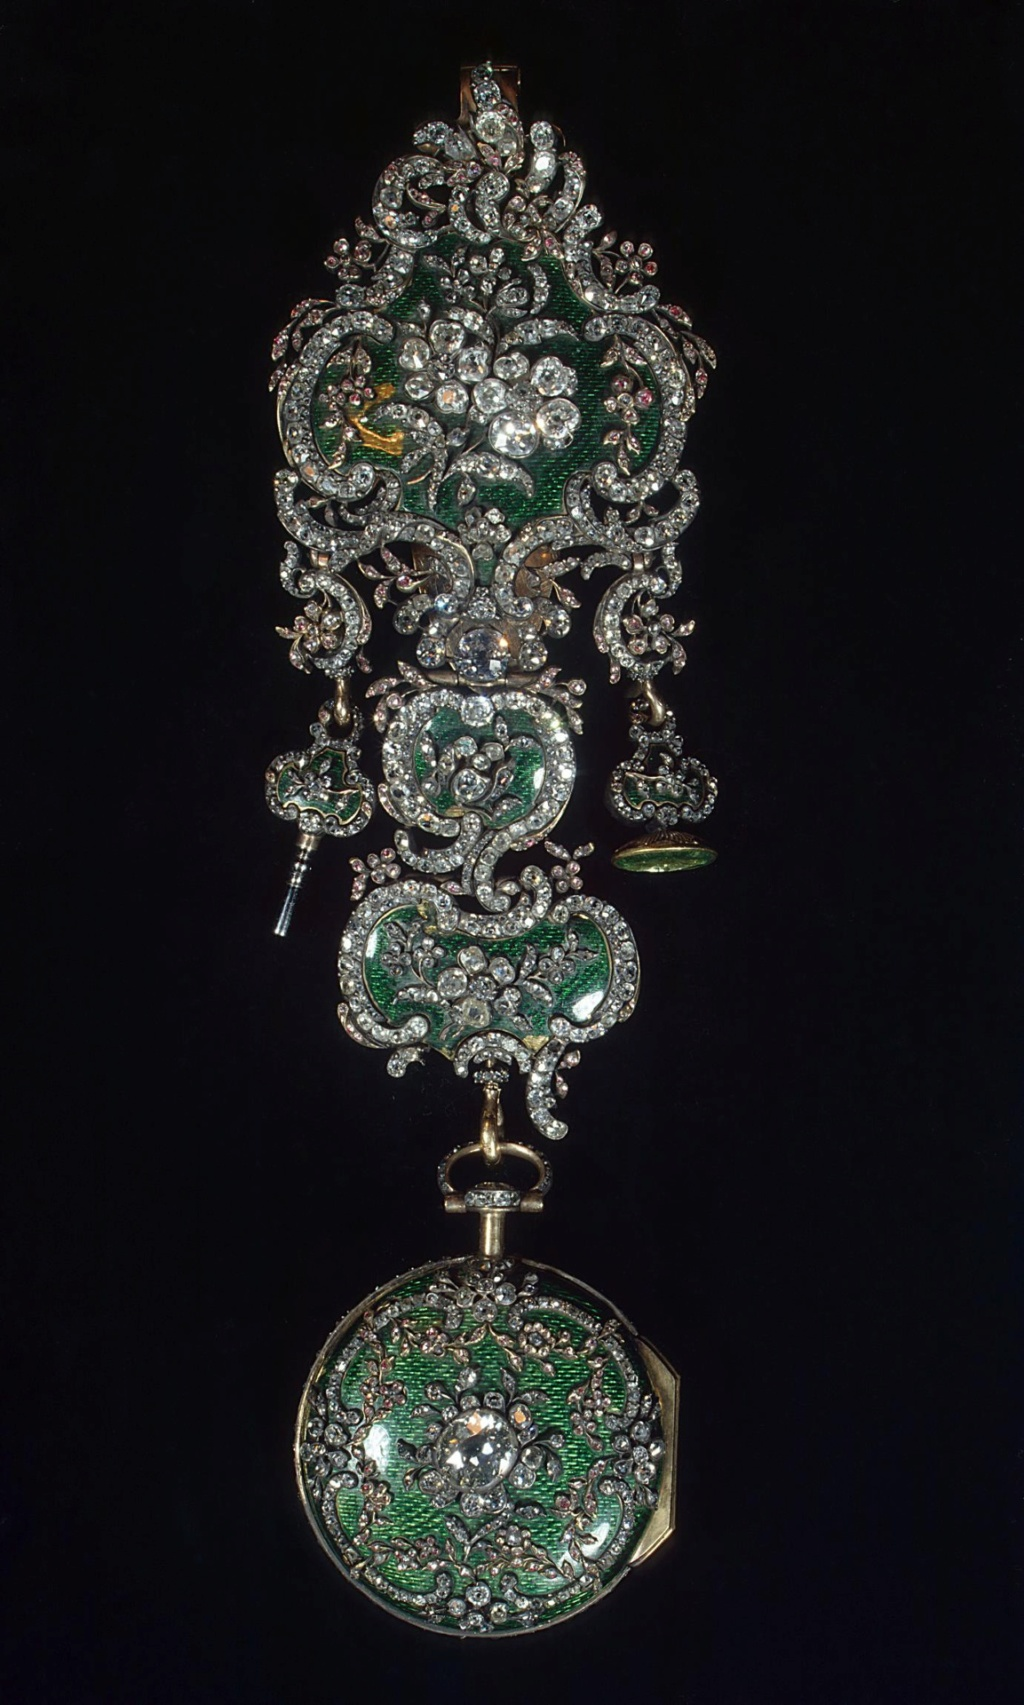 Exposition : Jewels ! Glittering at the Russian Court, Hermitage Amsterdam Woa_im79